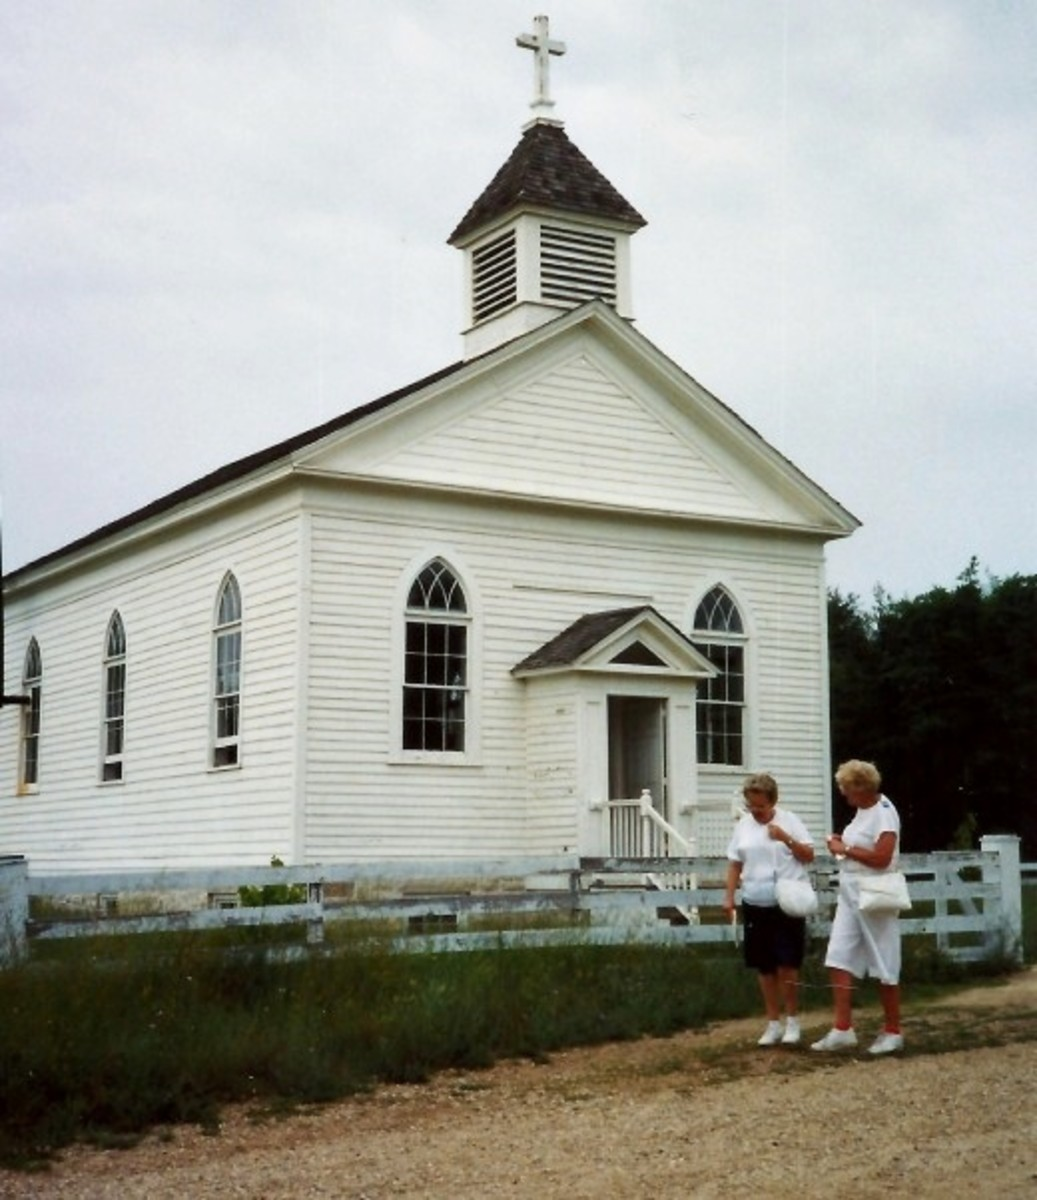 St. Peter's Church at Old World Wisconsin